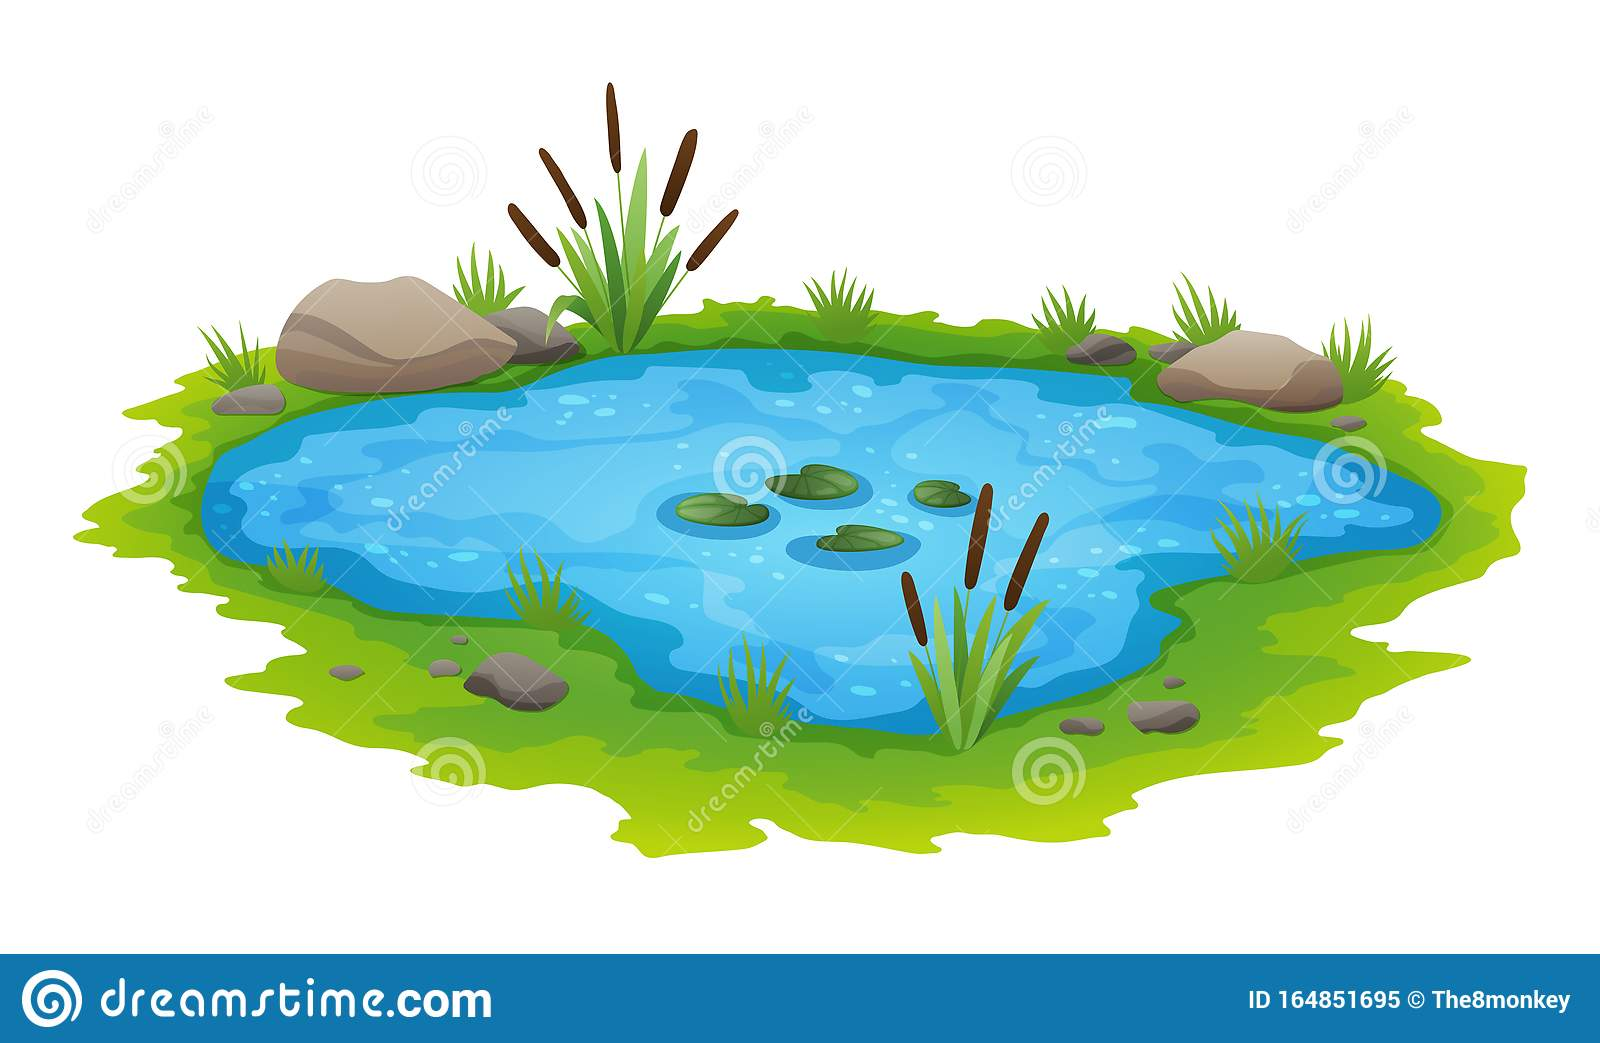 Natural Pond Outdoor Scene Small Blue Decorative Pond Isolated On White Lake Plants Nature Landscape Fishing Place Stock Vector Illustration Of Blossom Lake 164851695